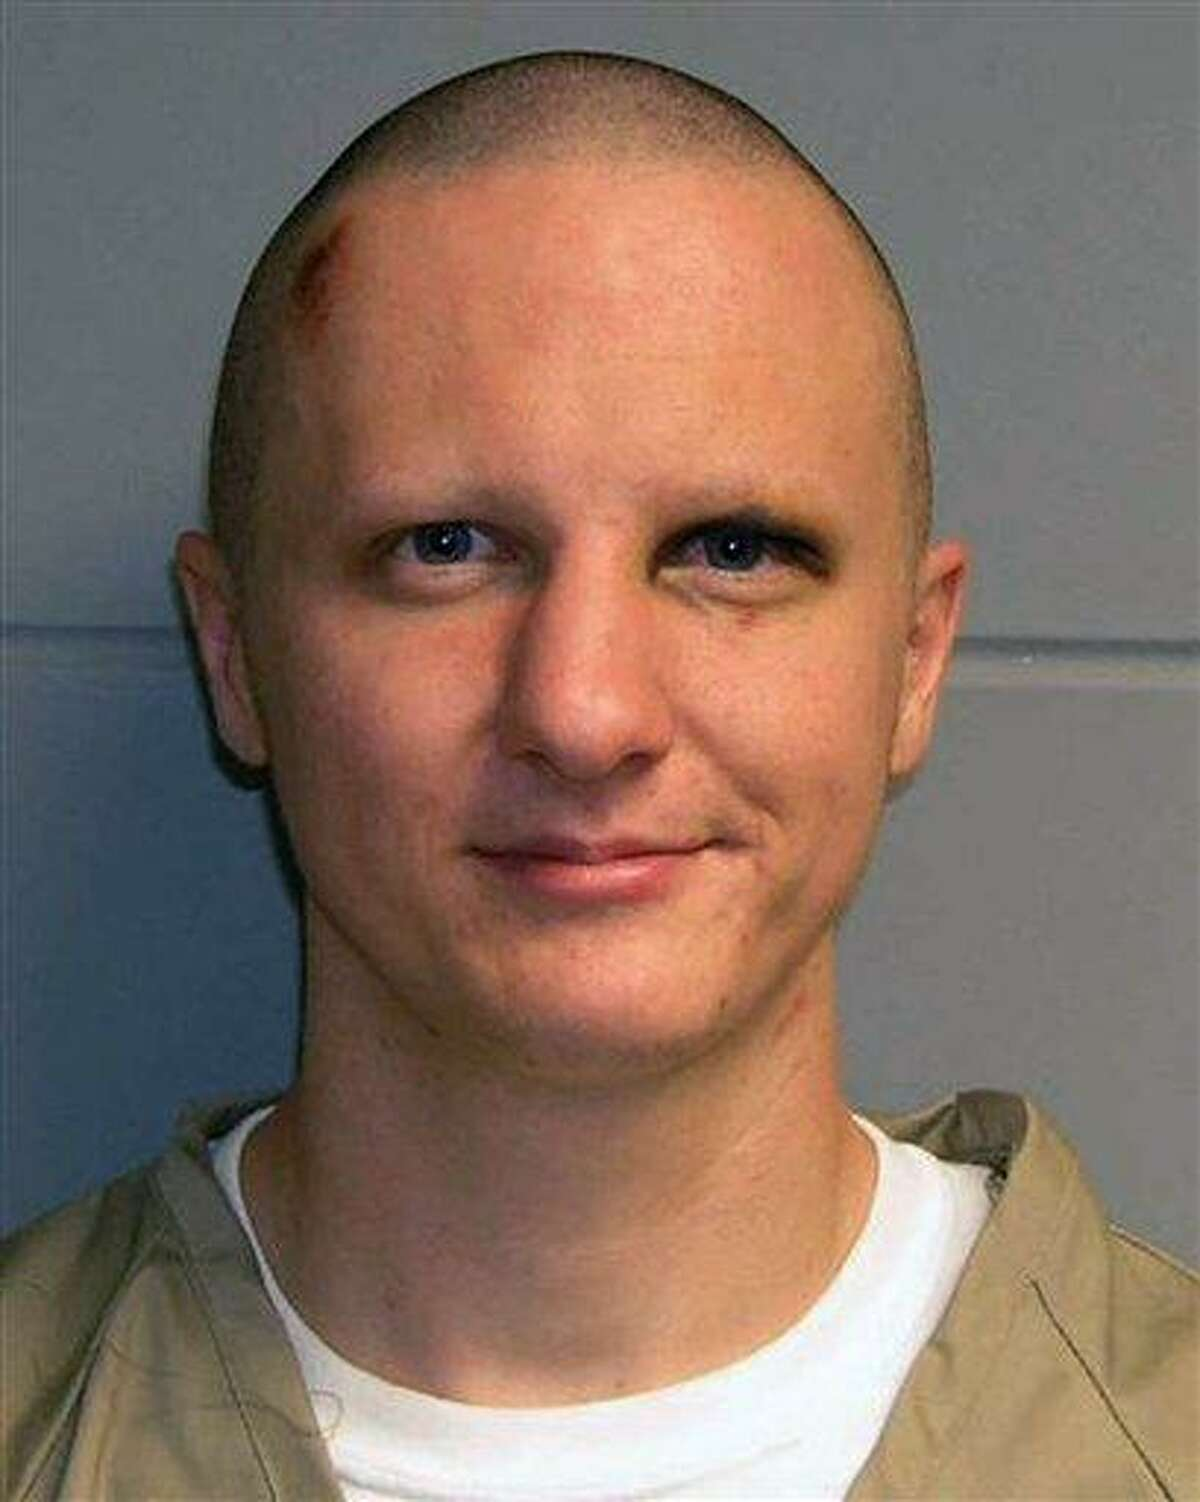 This 2011 file photo by the U.S. Marshal's Service shows Jared Lee Loughner, the suspect in the Tucson, Ariz., shooting rampage that killed six people and left several others wounded, including then-U.S. Rep. Gabrielle Giffords. Associated Press